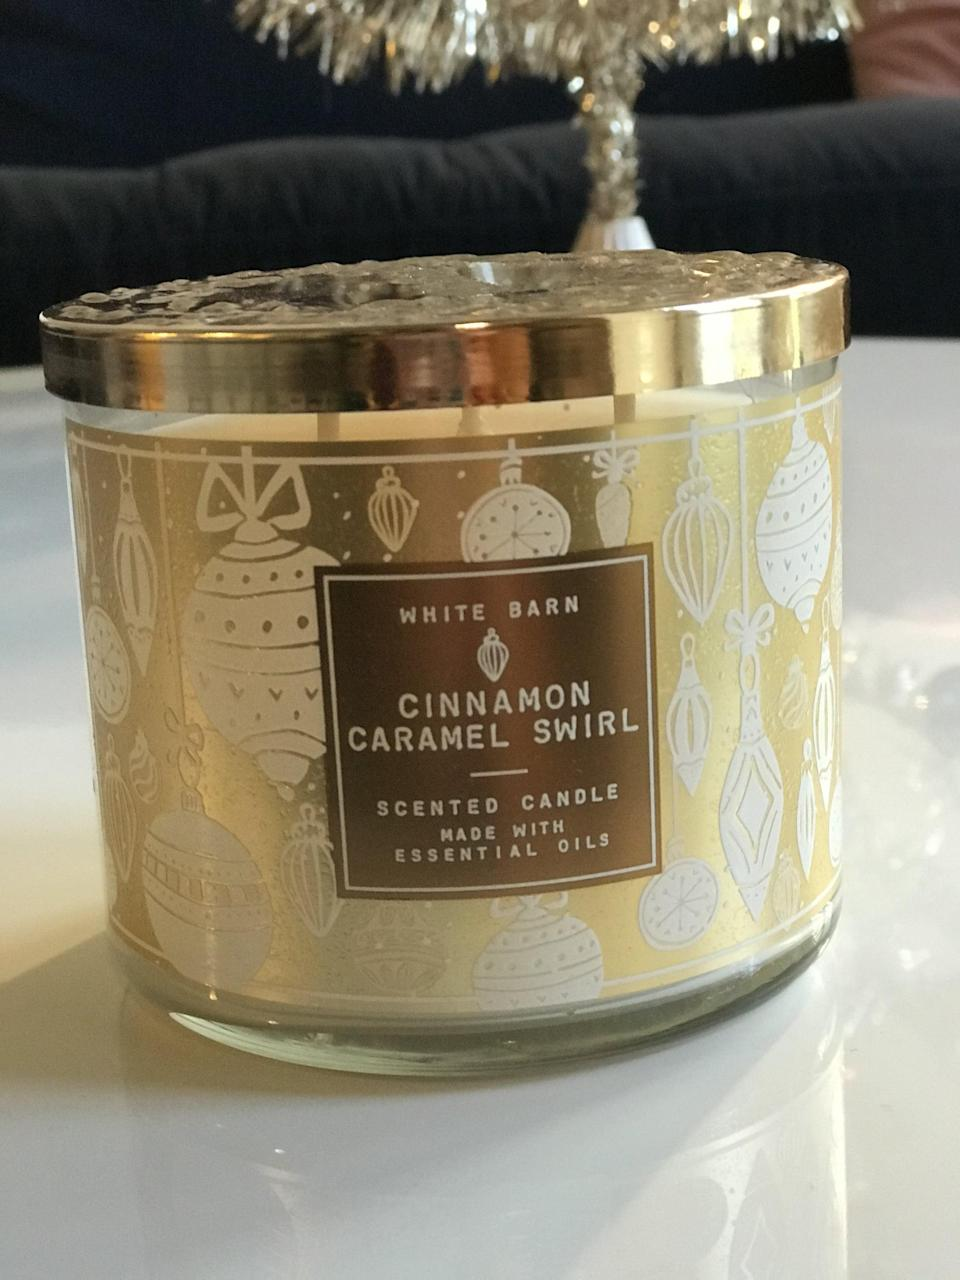 <p><span>Cinnamon Caramel Swirl 3-Wick Candle</span> ($15, originally $25)</p> <p><strong>What It Smells Like:</strong> If cinnamon and caramel got married and had the sweetest little child.</p>